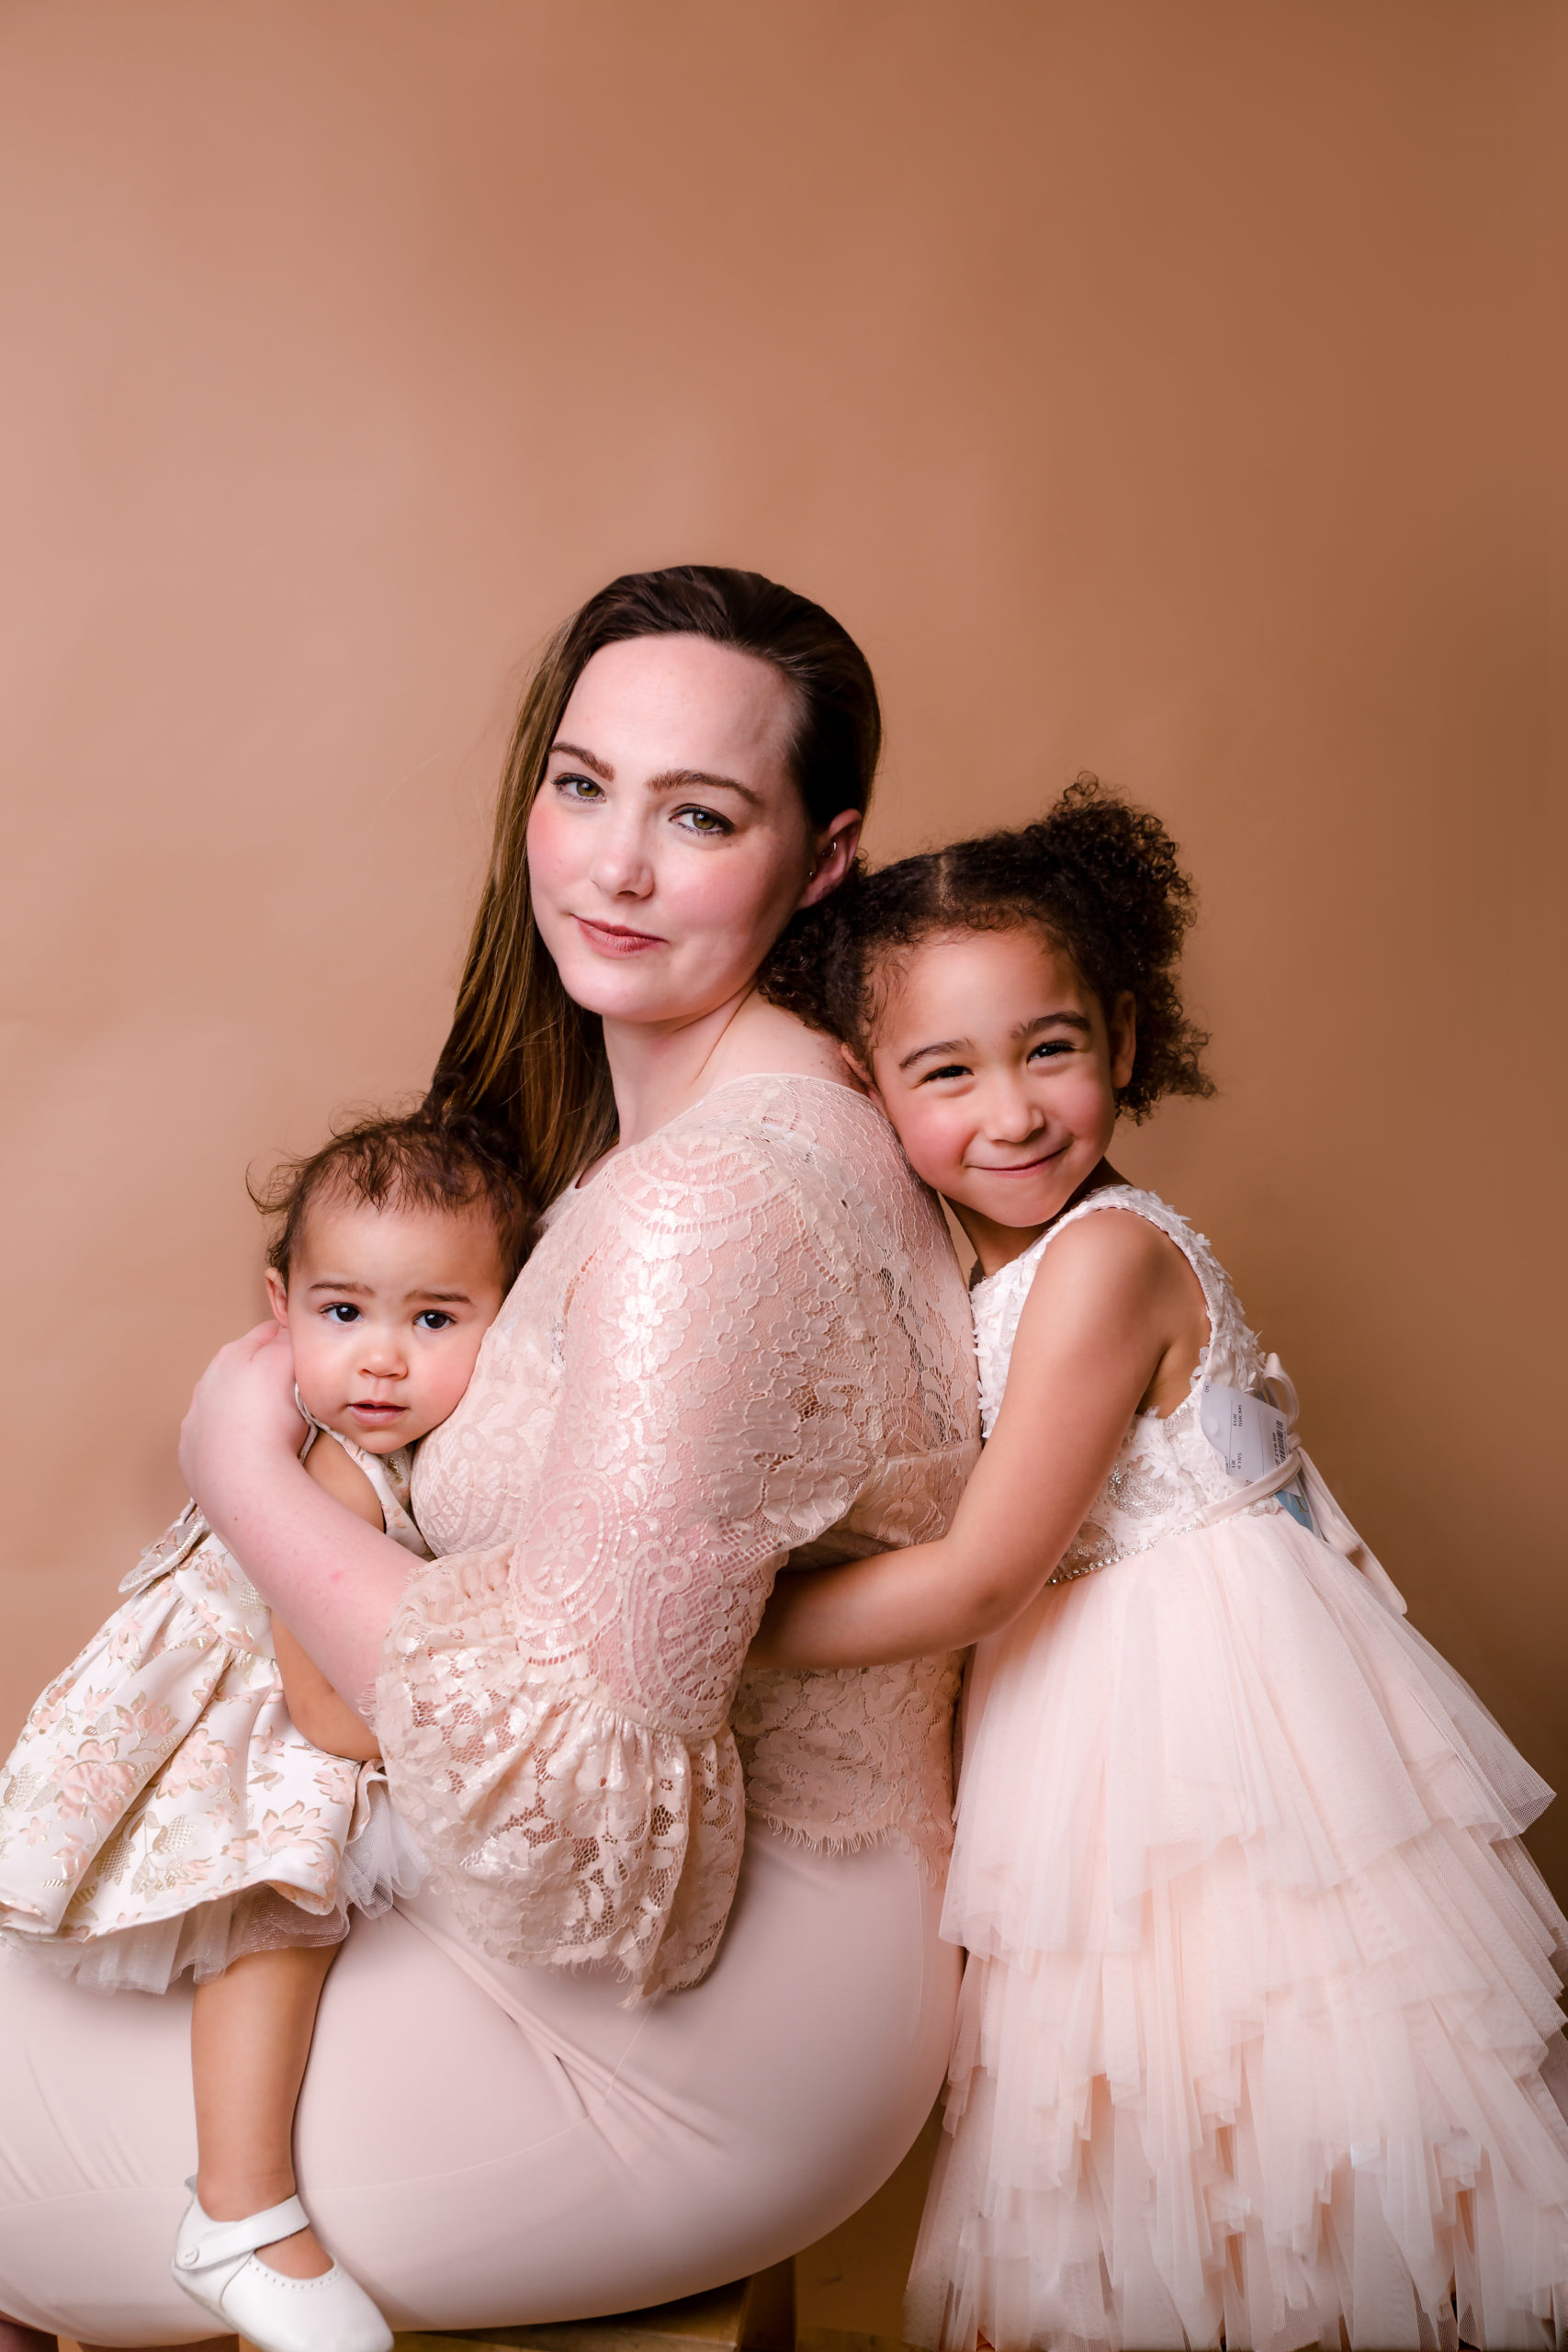 Family and children photographer in South West London SW19 family portrait photography Mother and her two daughters studio formal classic portrait